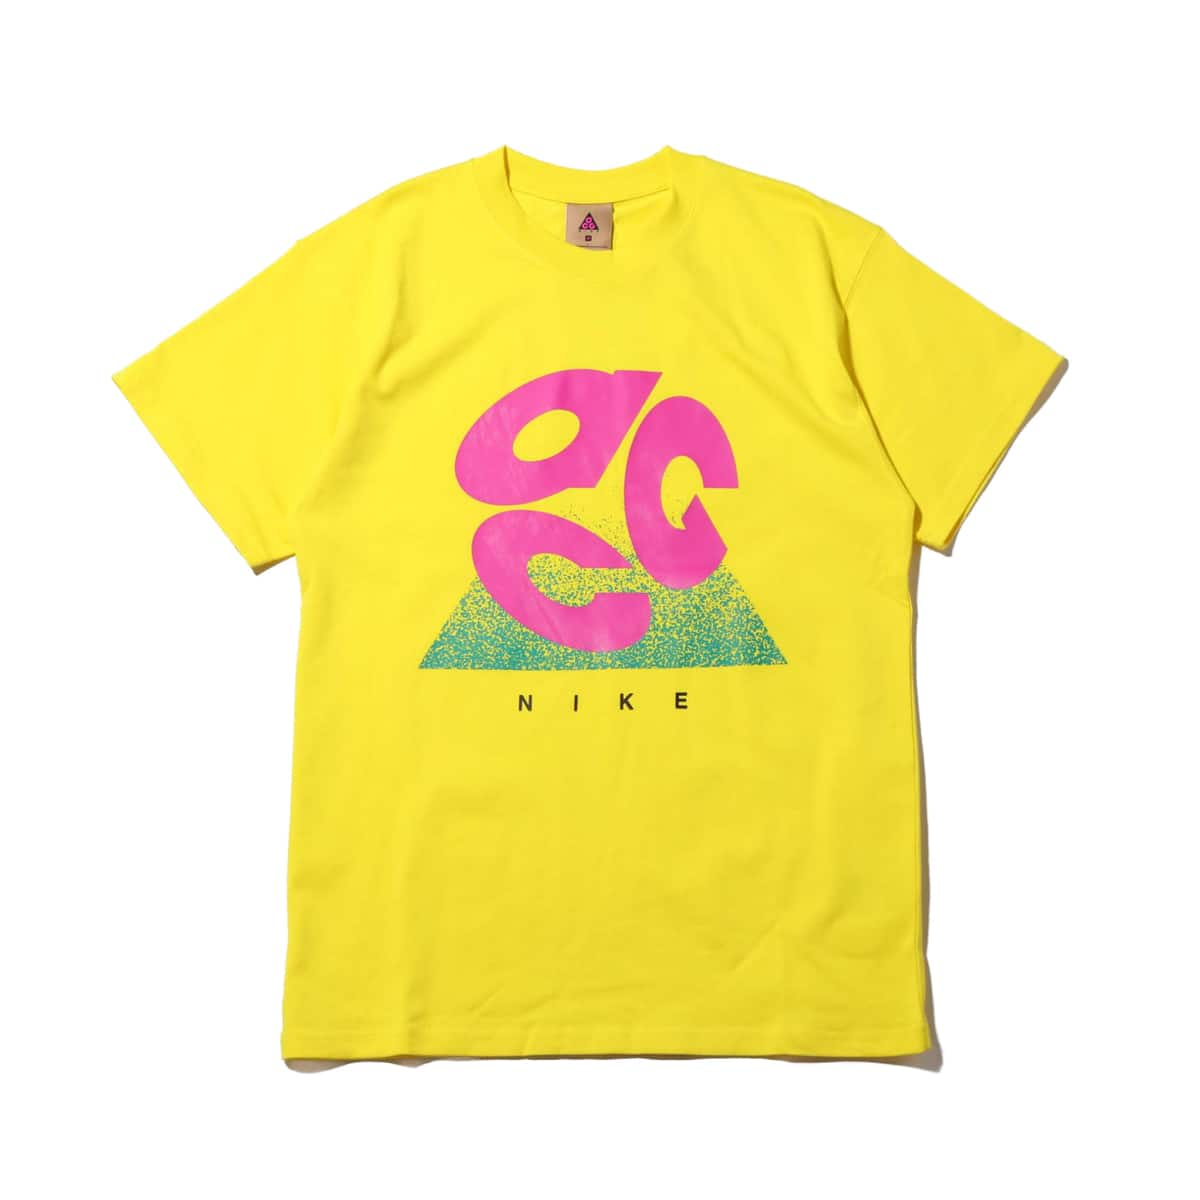 NIKE AS M NRG ACG SS TEE LOGO EVO OPTI YELLOW/ACTIVE FUCHSIA 20SP-S_photo_large